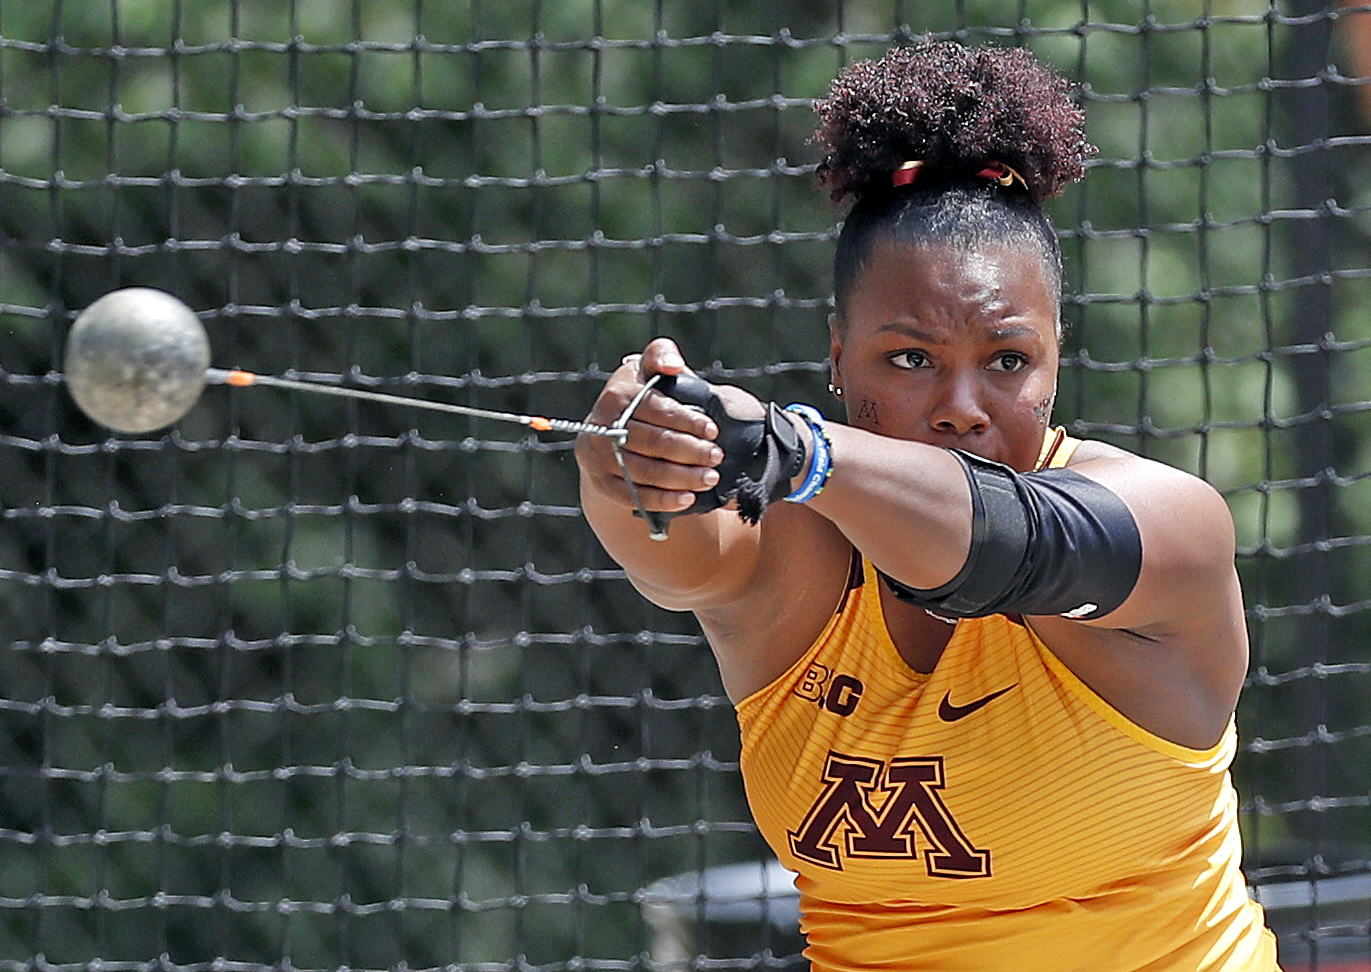 Nayoka Clunis' 20.98m throw gave her third in the women's weight throw event